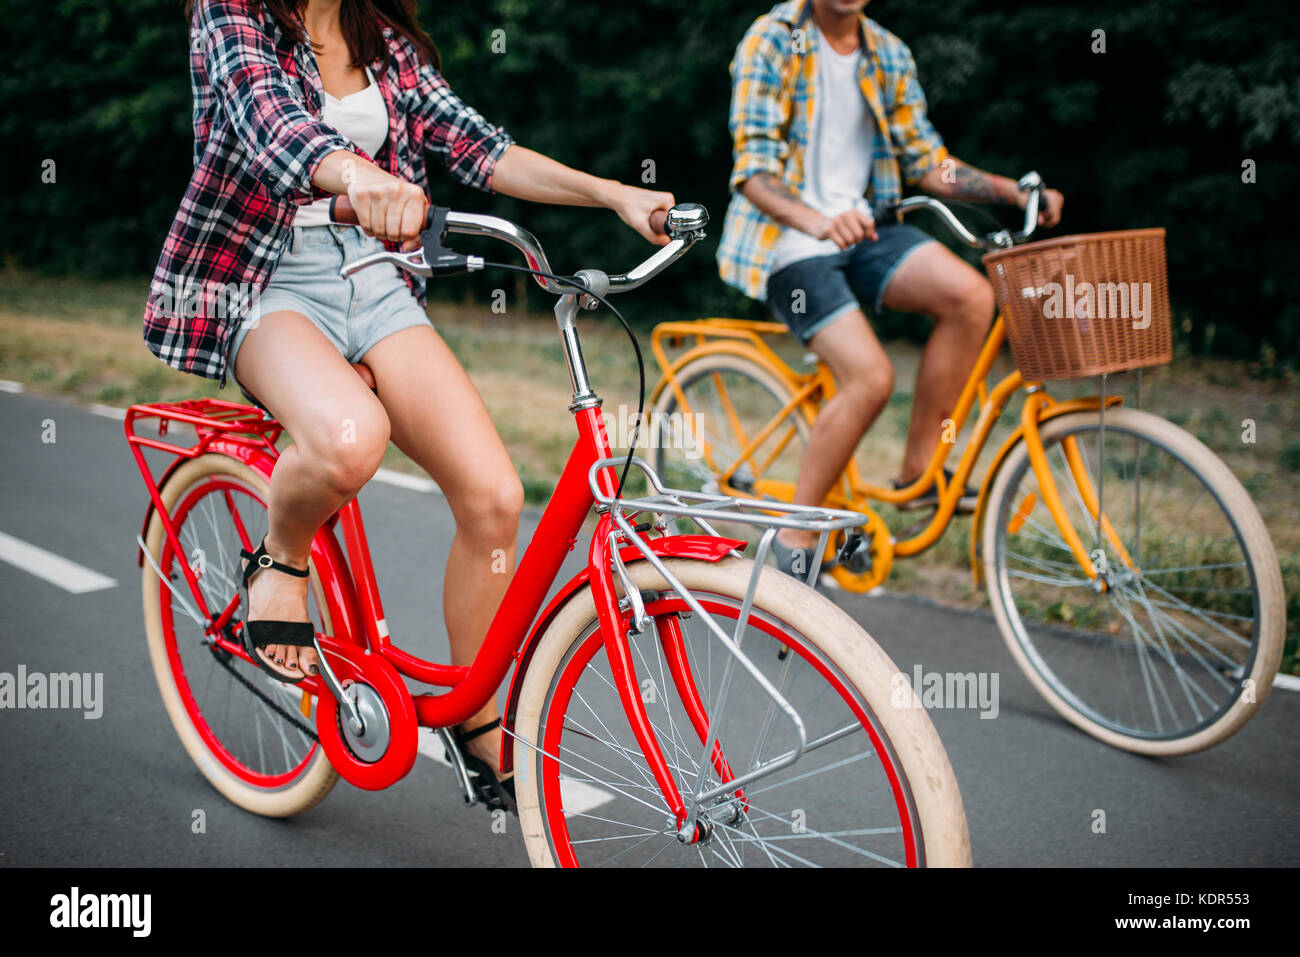 Male and female persons riding on retro bikes  Couple on vintage